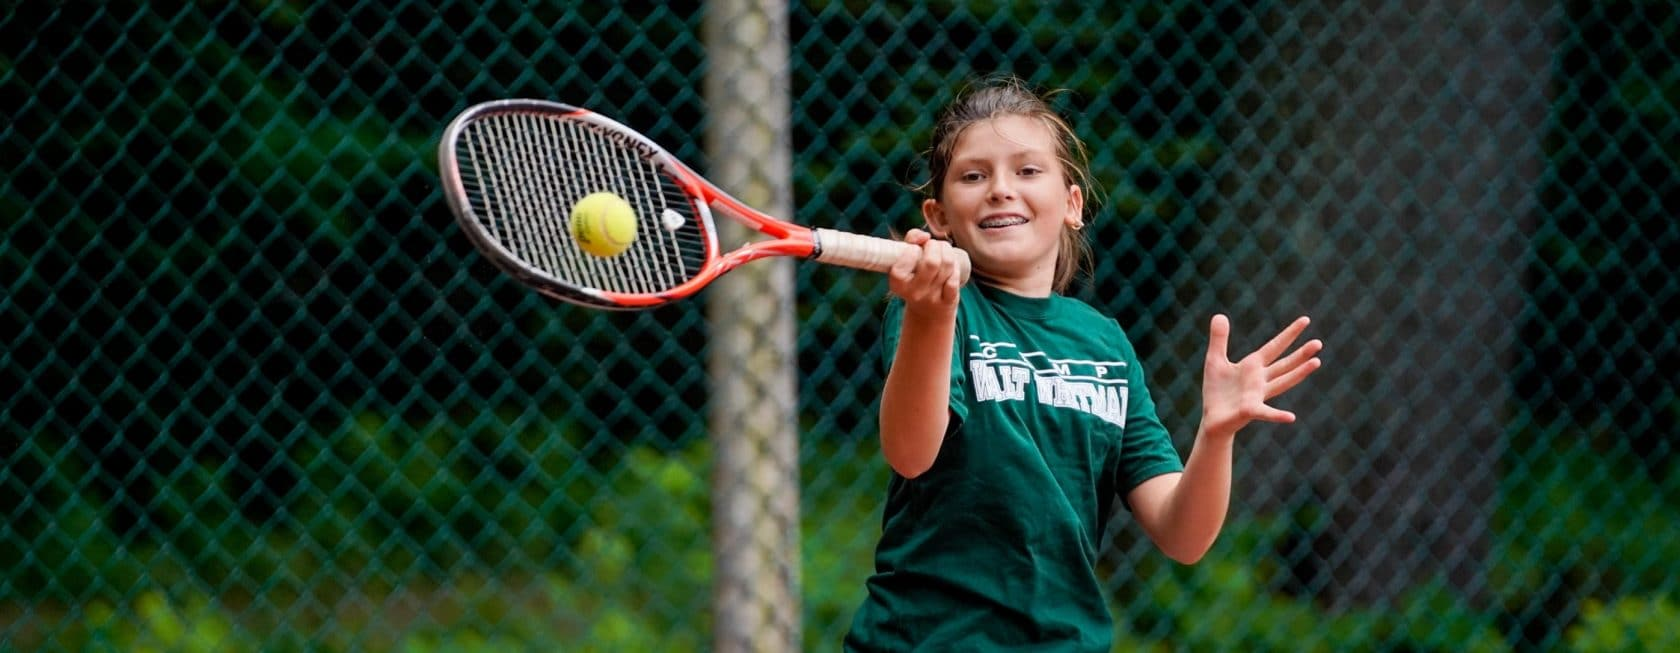 a girl swings her tennis rackets and hits a ball